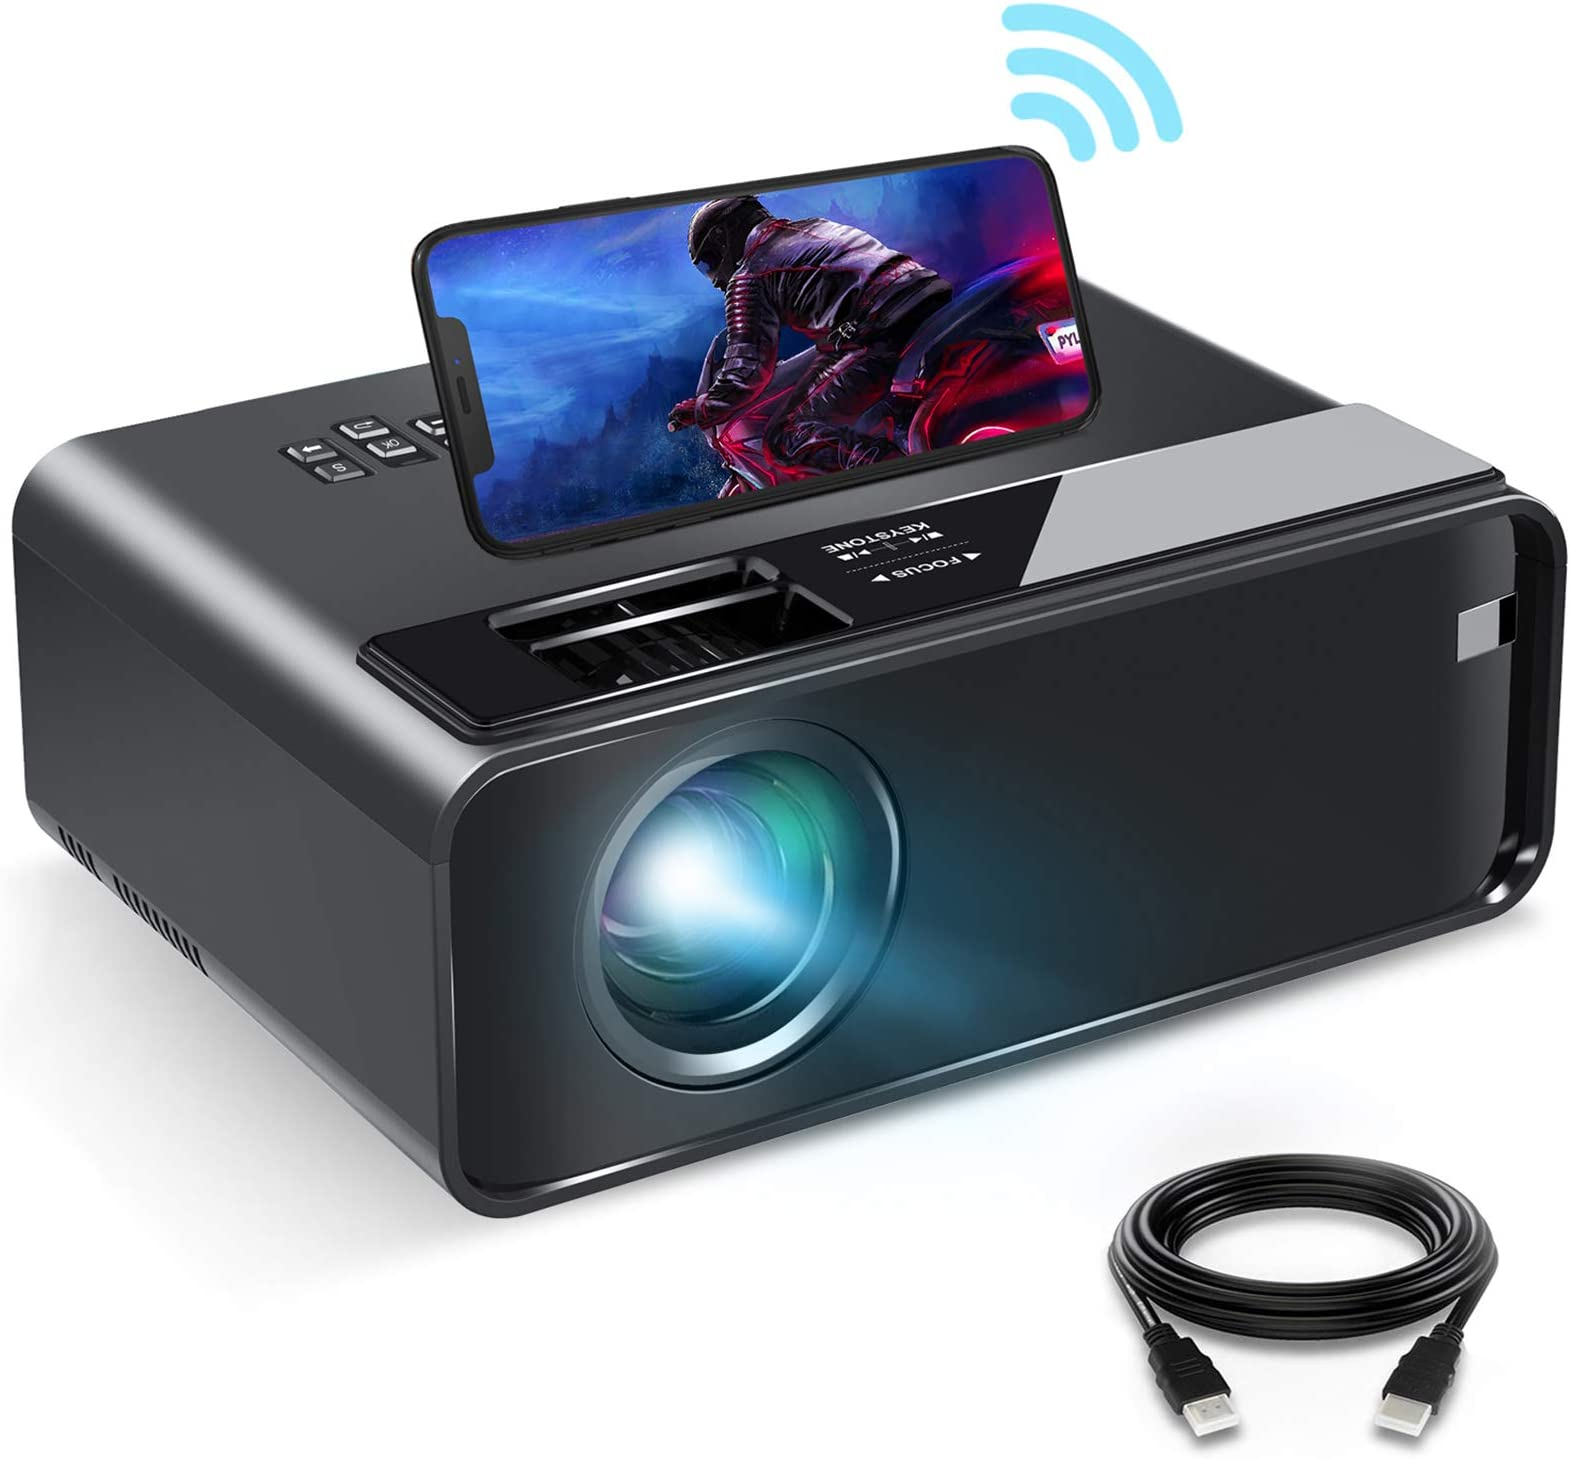 """Mini Projector for iPhone, ELEPHAS 2021 Upgrade WiFi Movie Projector with Synchronize Smartphone Screen, 1080P HD Portable Projector Supported 200"""" Screen, Compatible with Android/iOS/HDMI/USB/SD/VGA"""